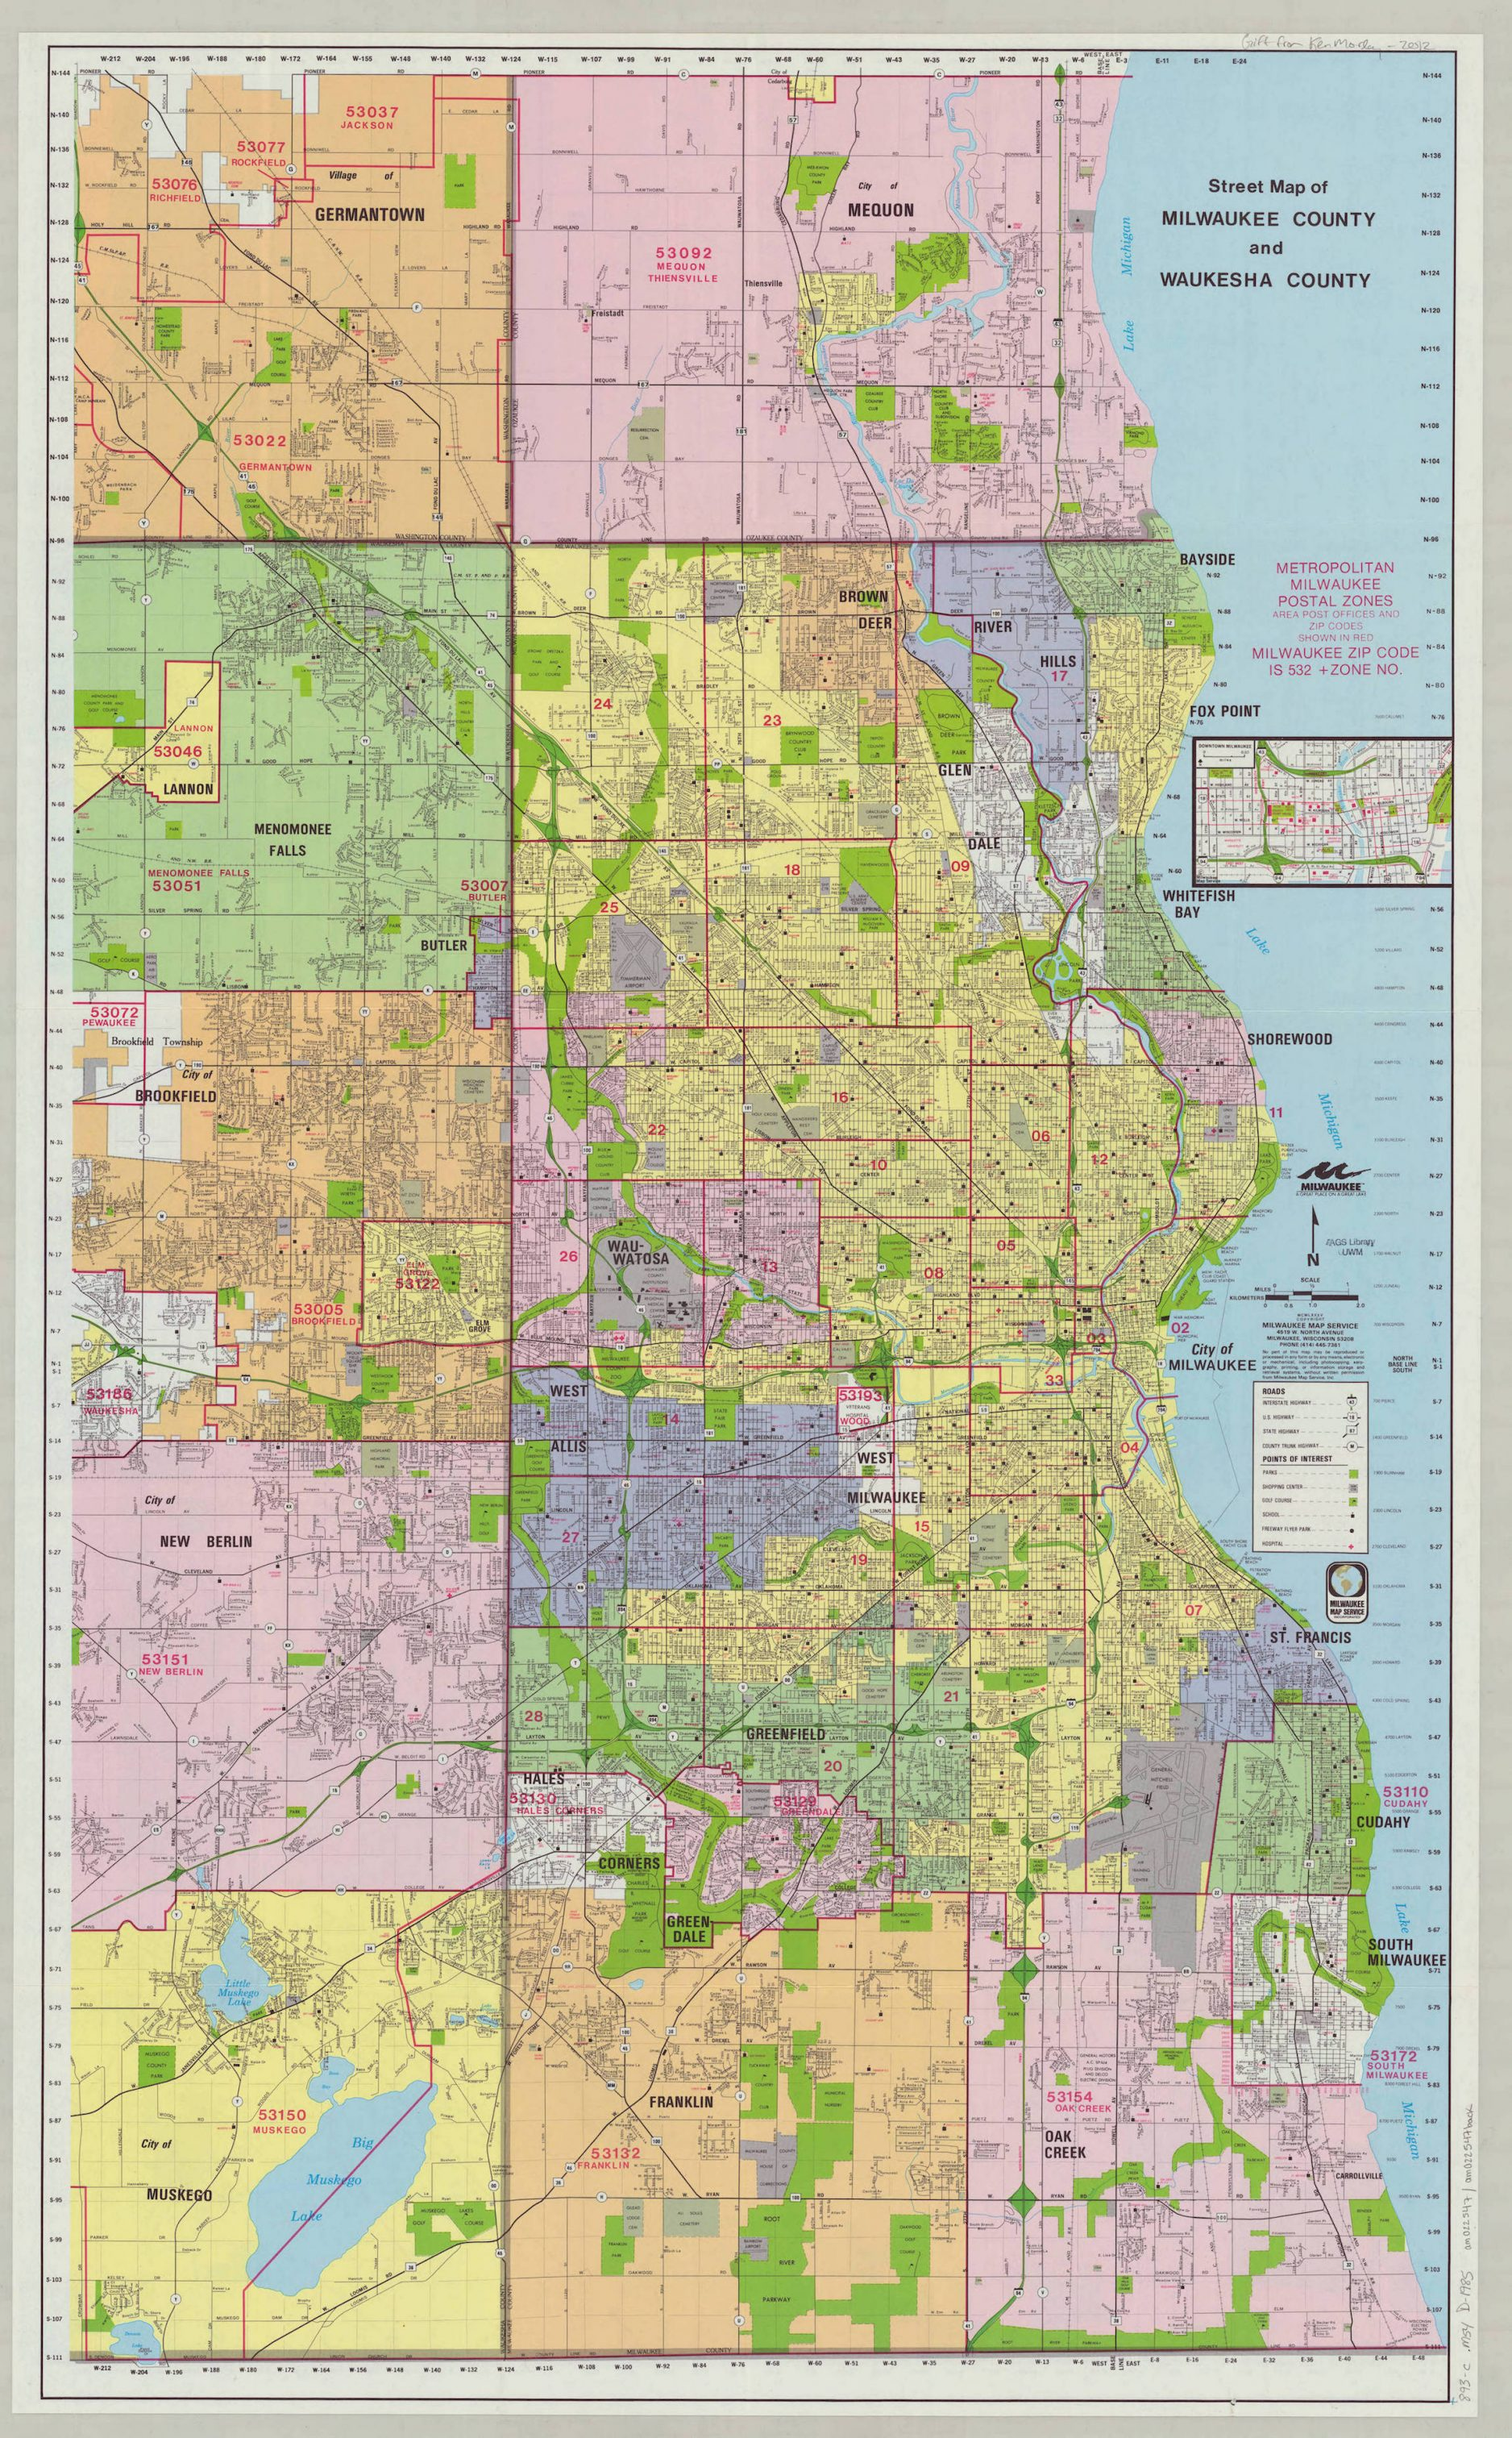 This 1985 map illustrates the many communities that have developed in the greater Milwaukee area over time.